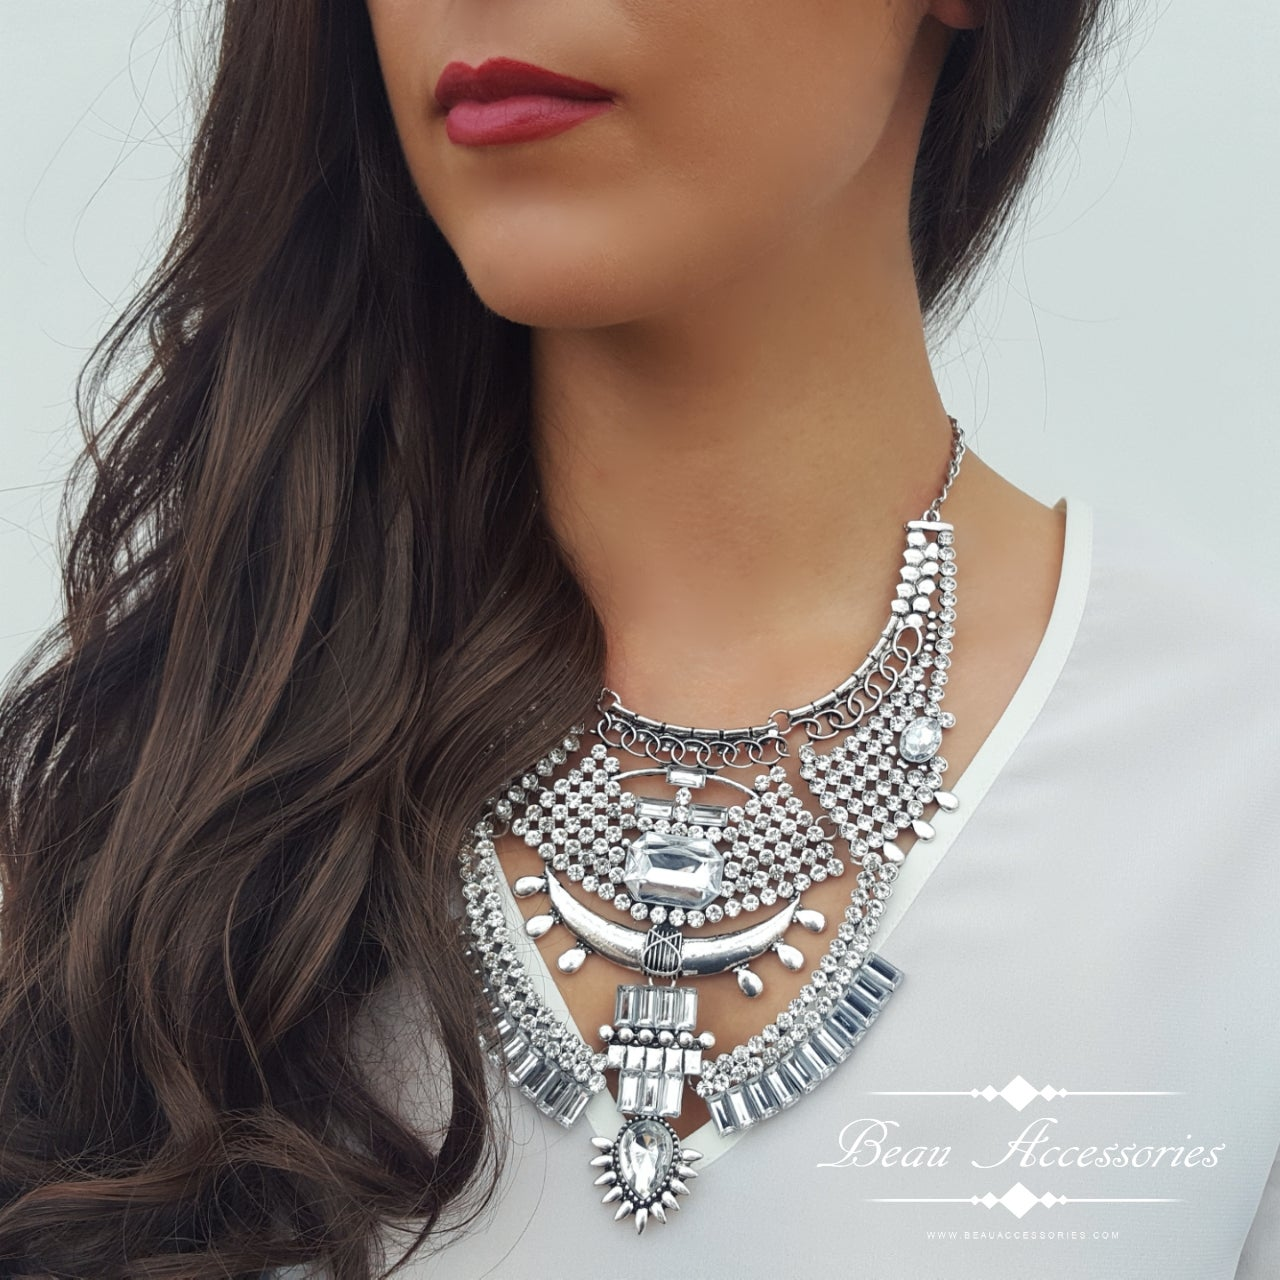 Image of Boho Silver Crystal Encrusted Necklace